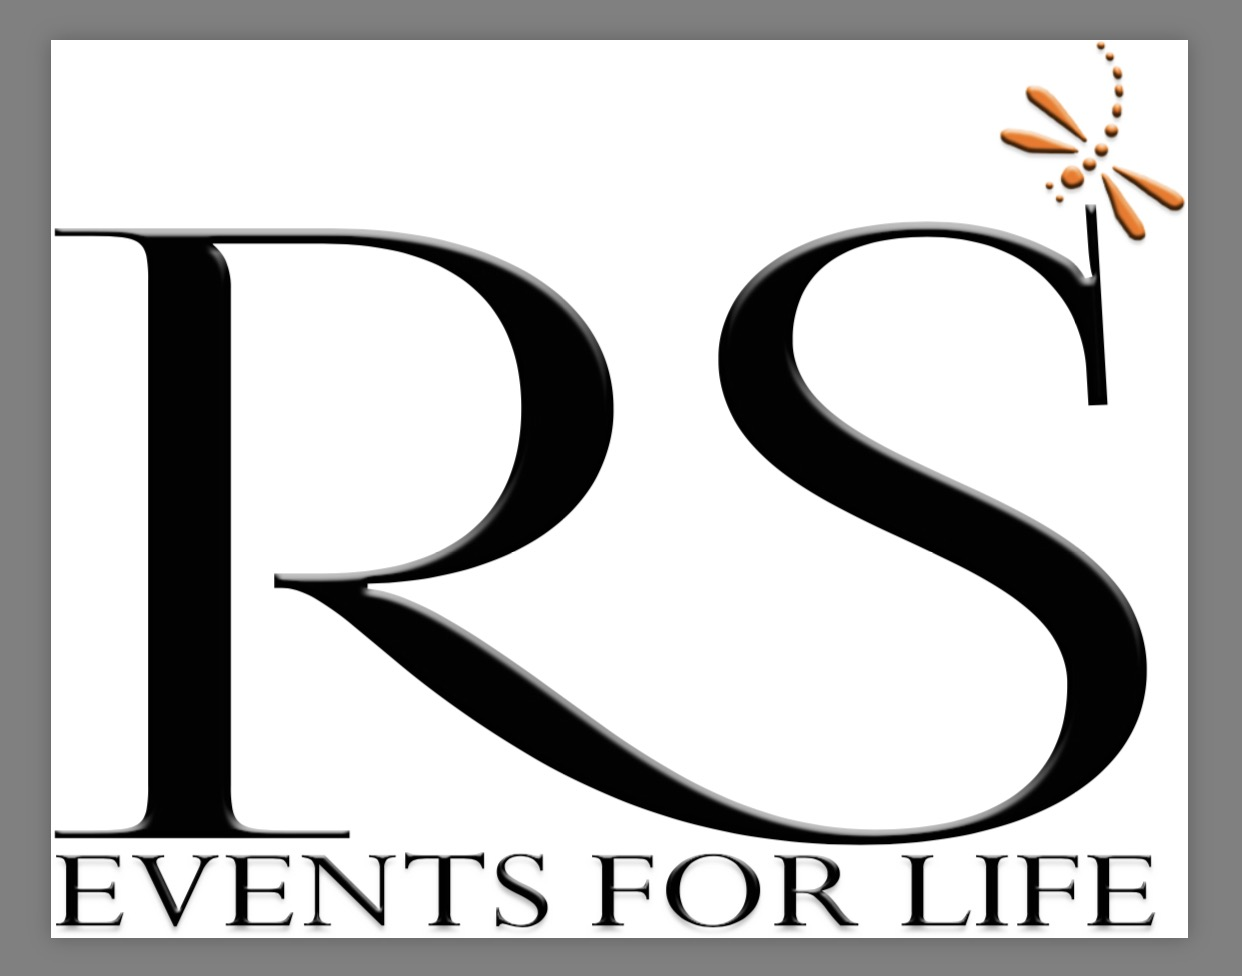 Rs Events For Life